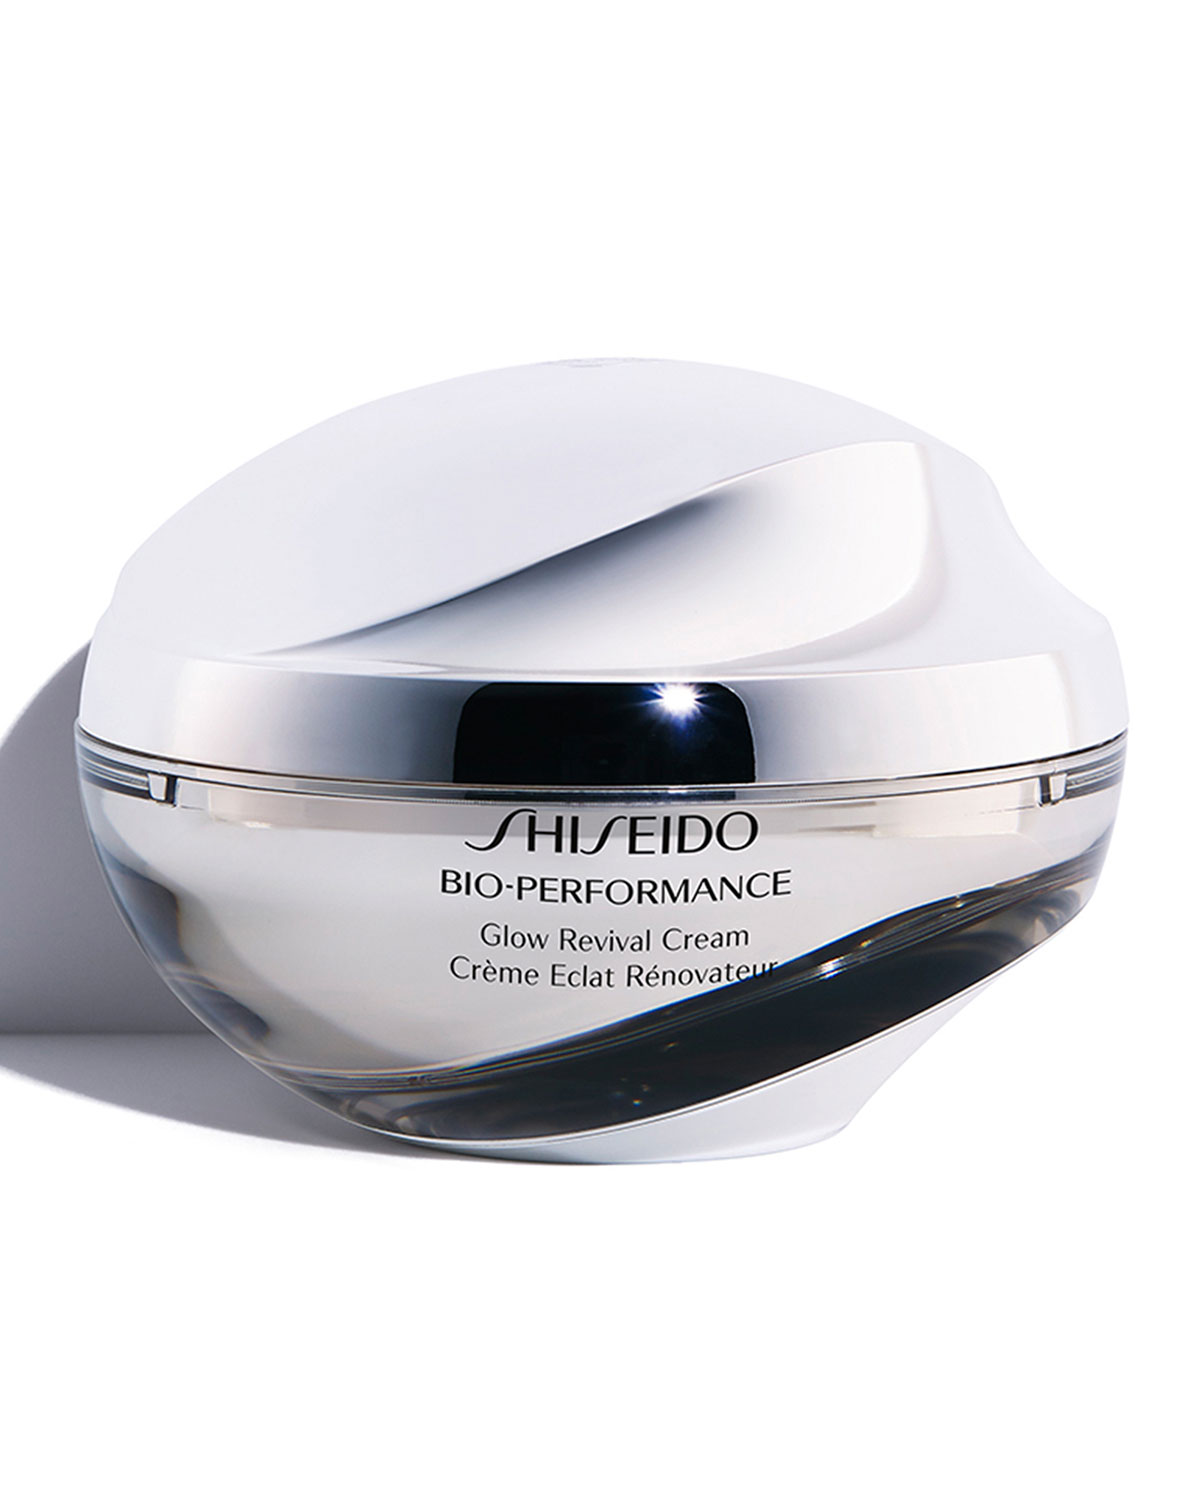 Shiseido Bio-Performance Glow Revival Cream, 2.6 oz.